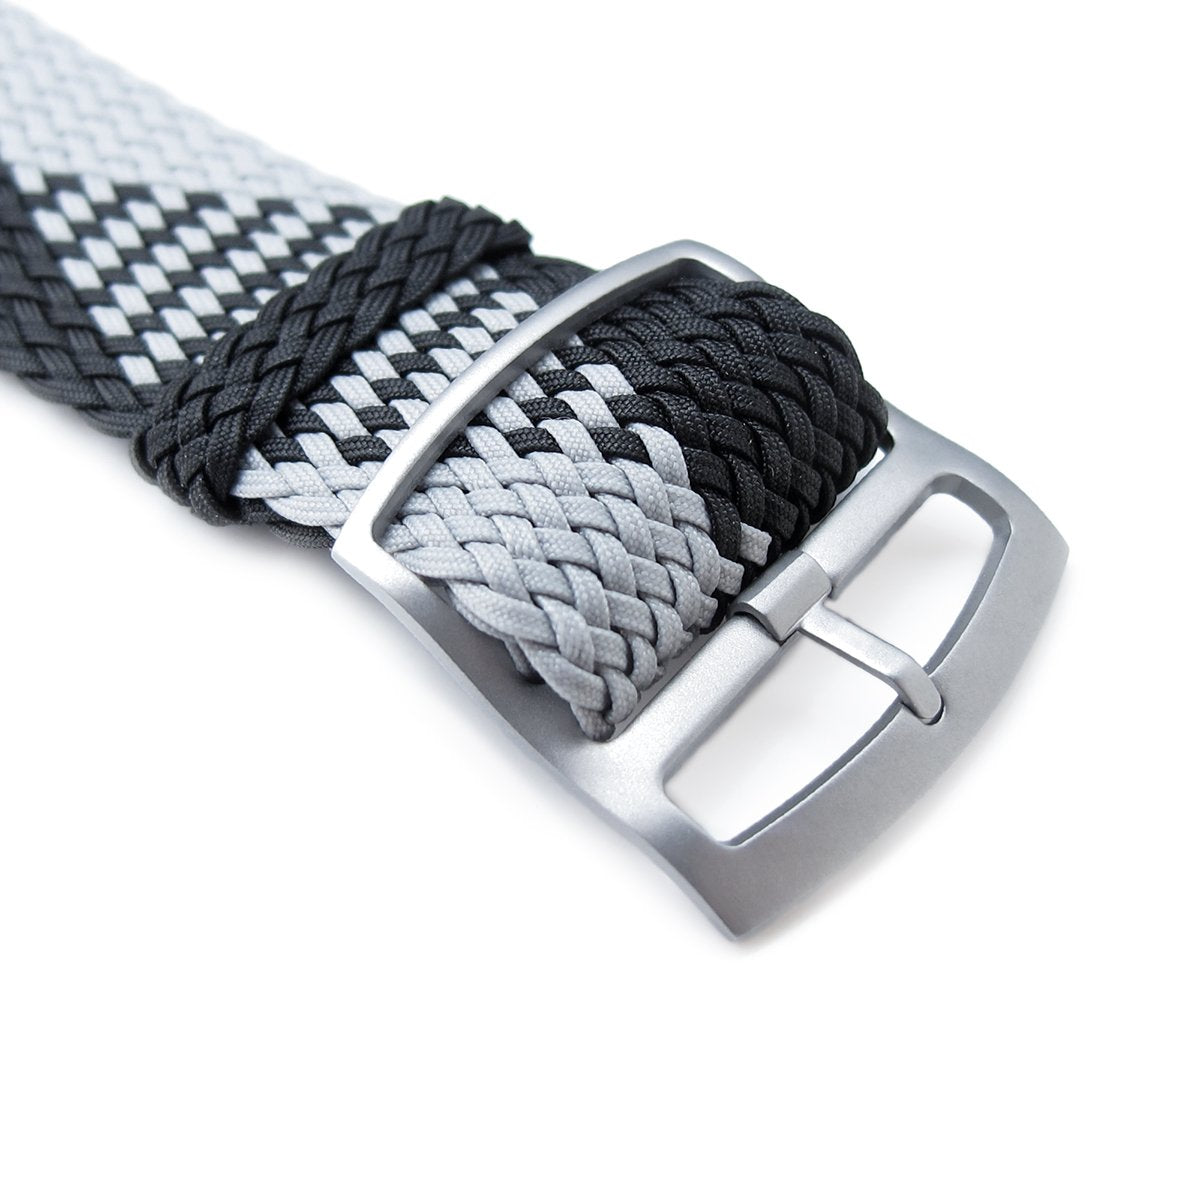 20 22mm MiLTAT Perlon Watch Strap Black & Light Grey Sandblasted Ladder Lock Slider Buckle Strapcode Watch Bands